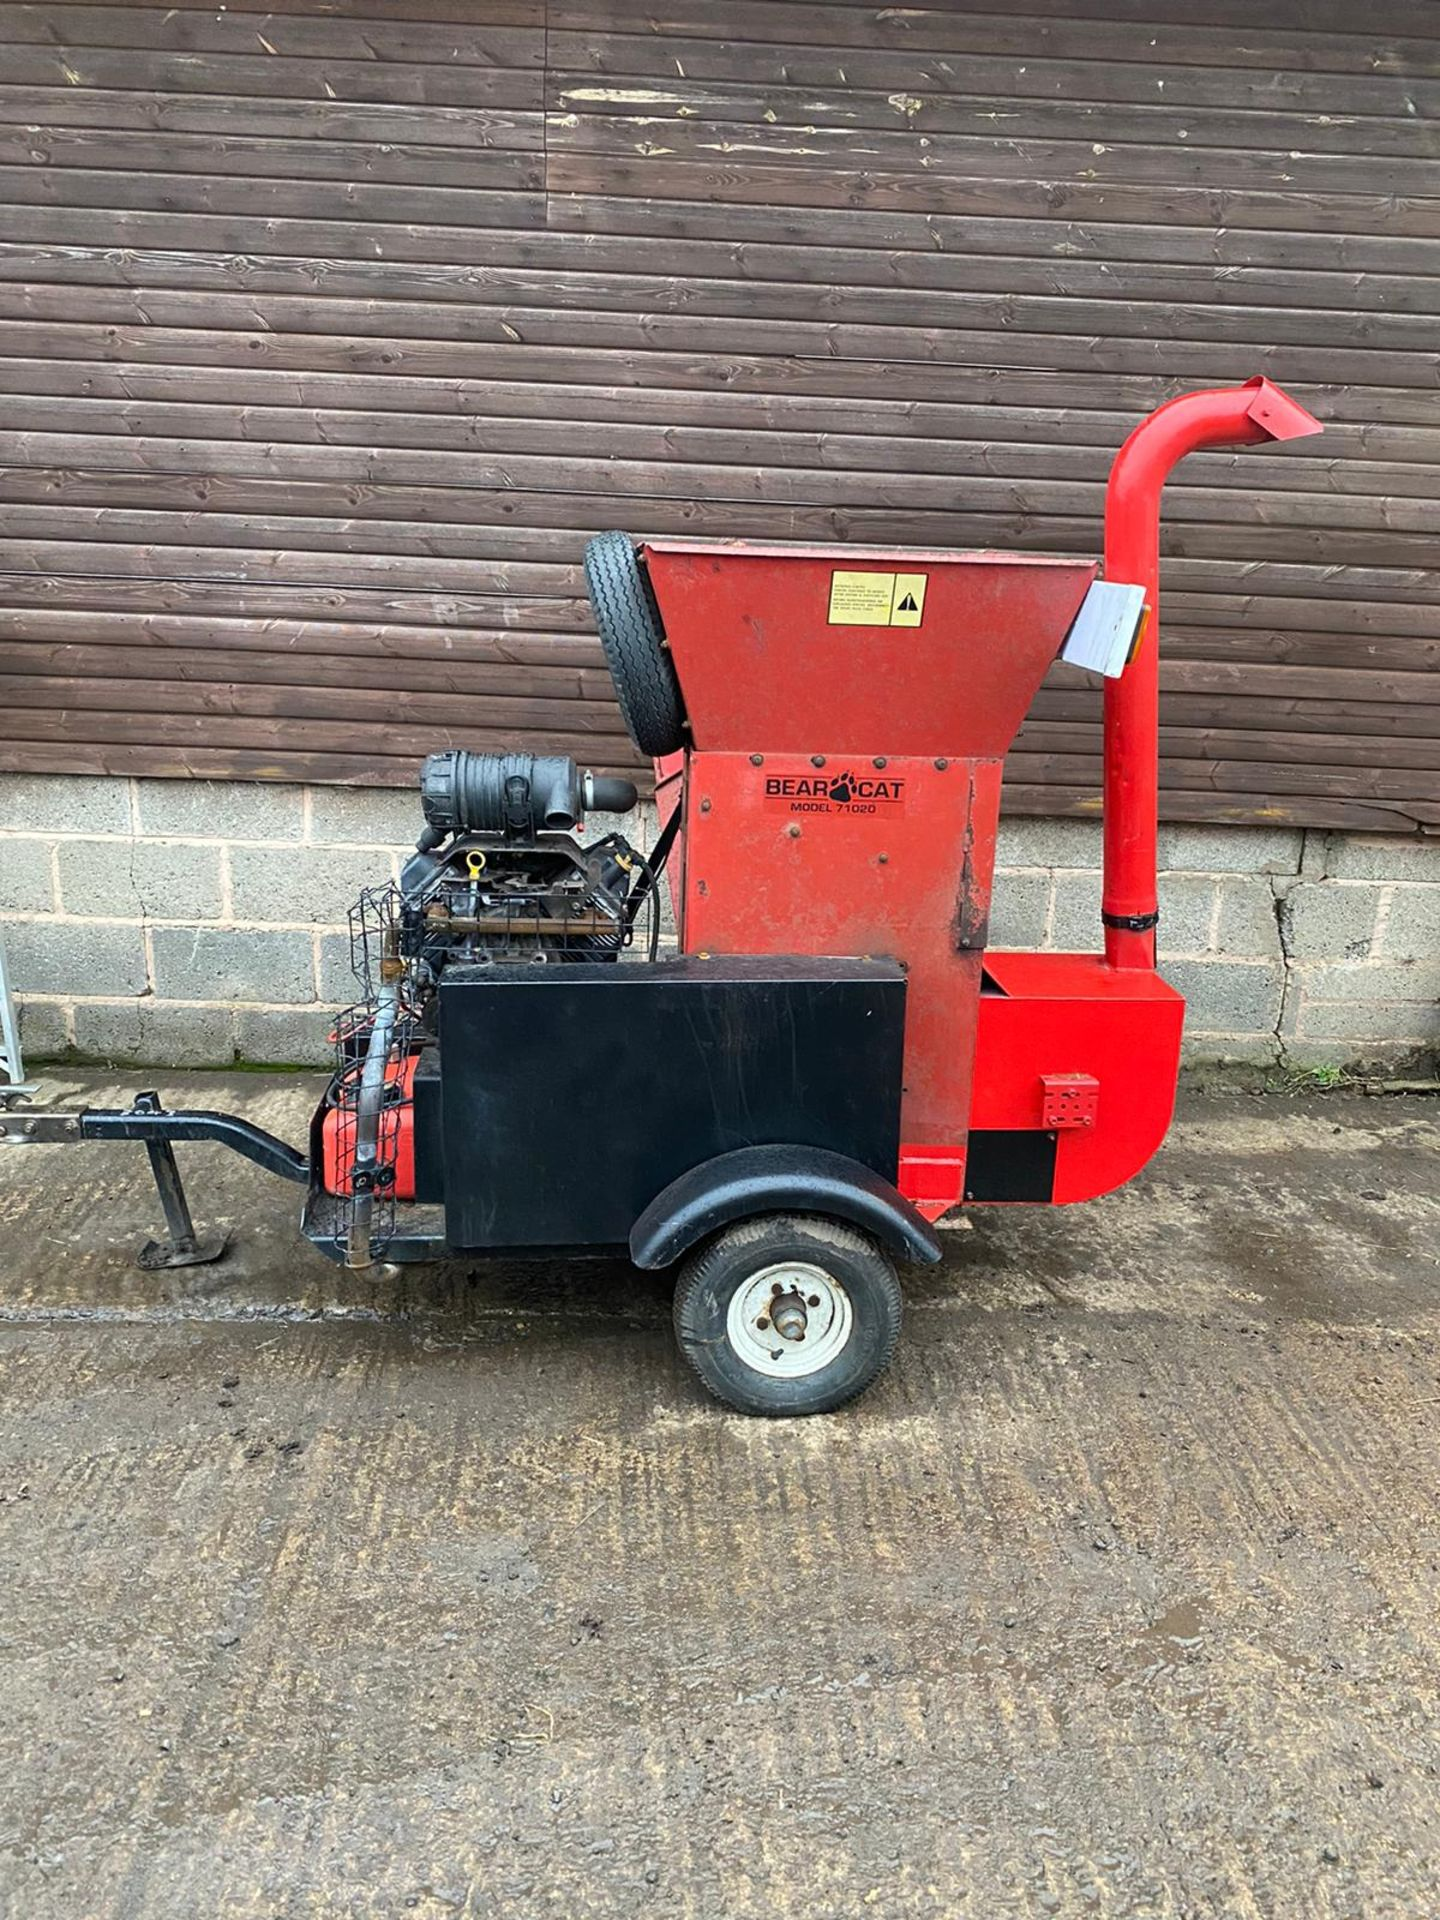 BEARCAT 71020 TOWABLE WOOD CHIPPER, KEY START 27HP PETROL ENGINE, ROAD TOWABLE *PLUS VAT* - Image 6 of 6